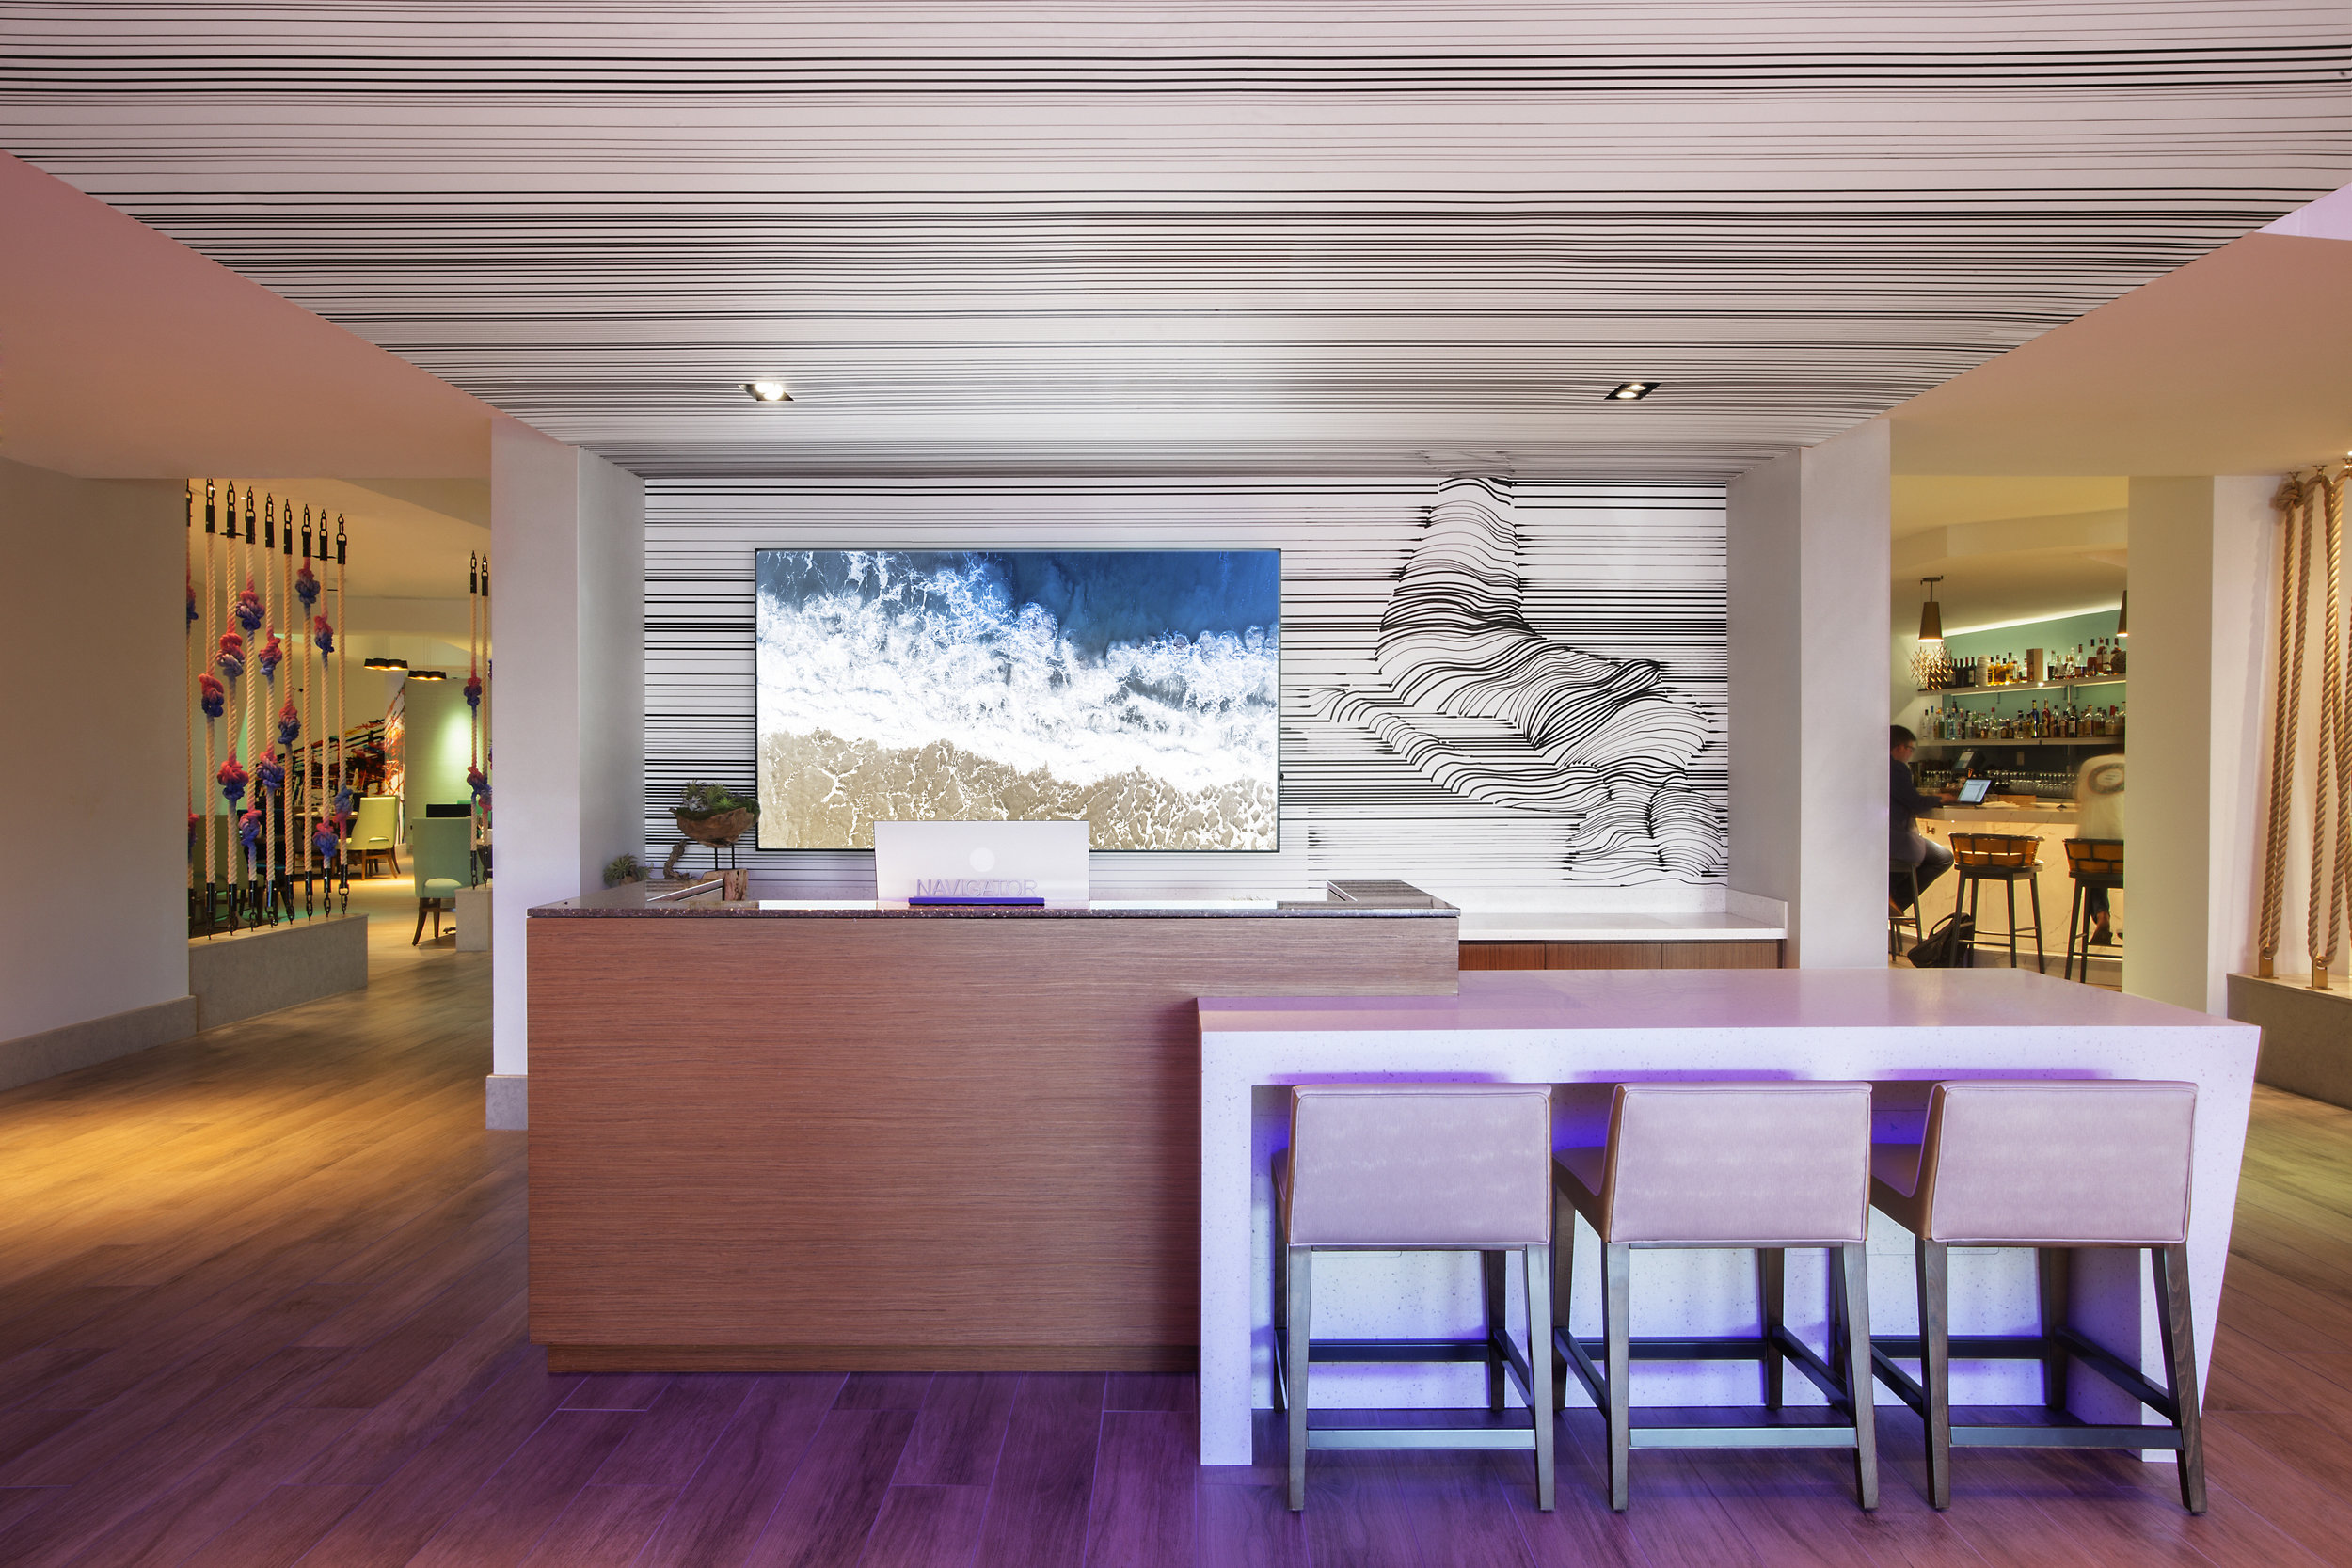 RENAISSANCE, NEWPORT BEACH - Curated by Indiewalls